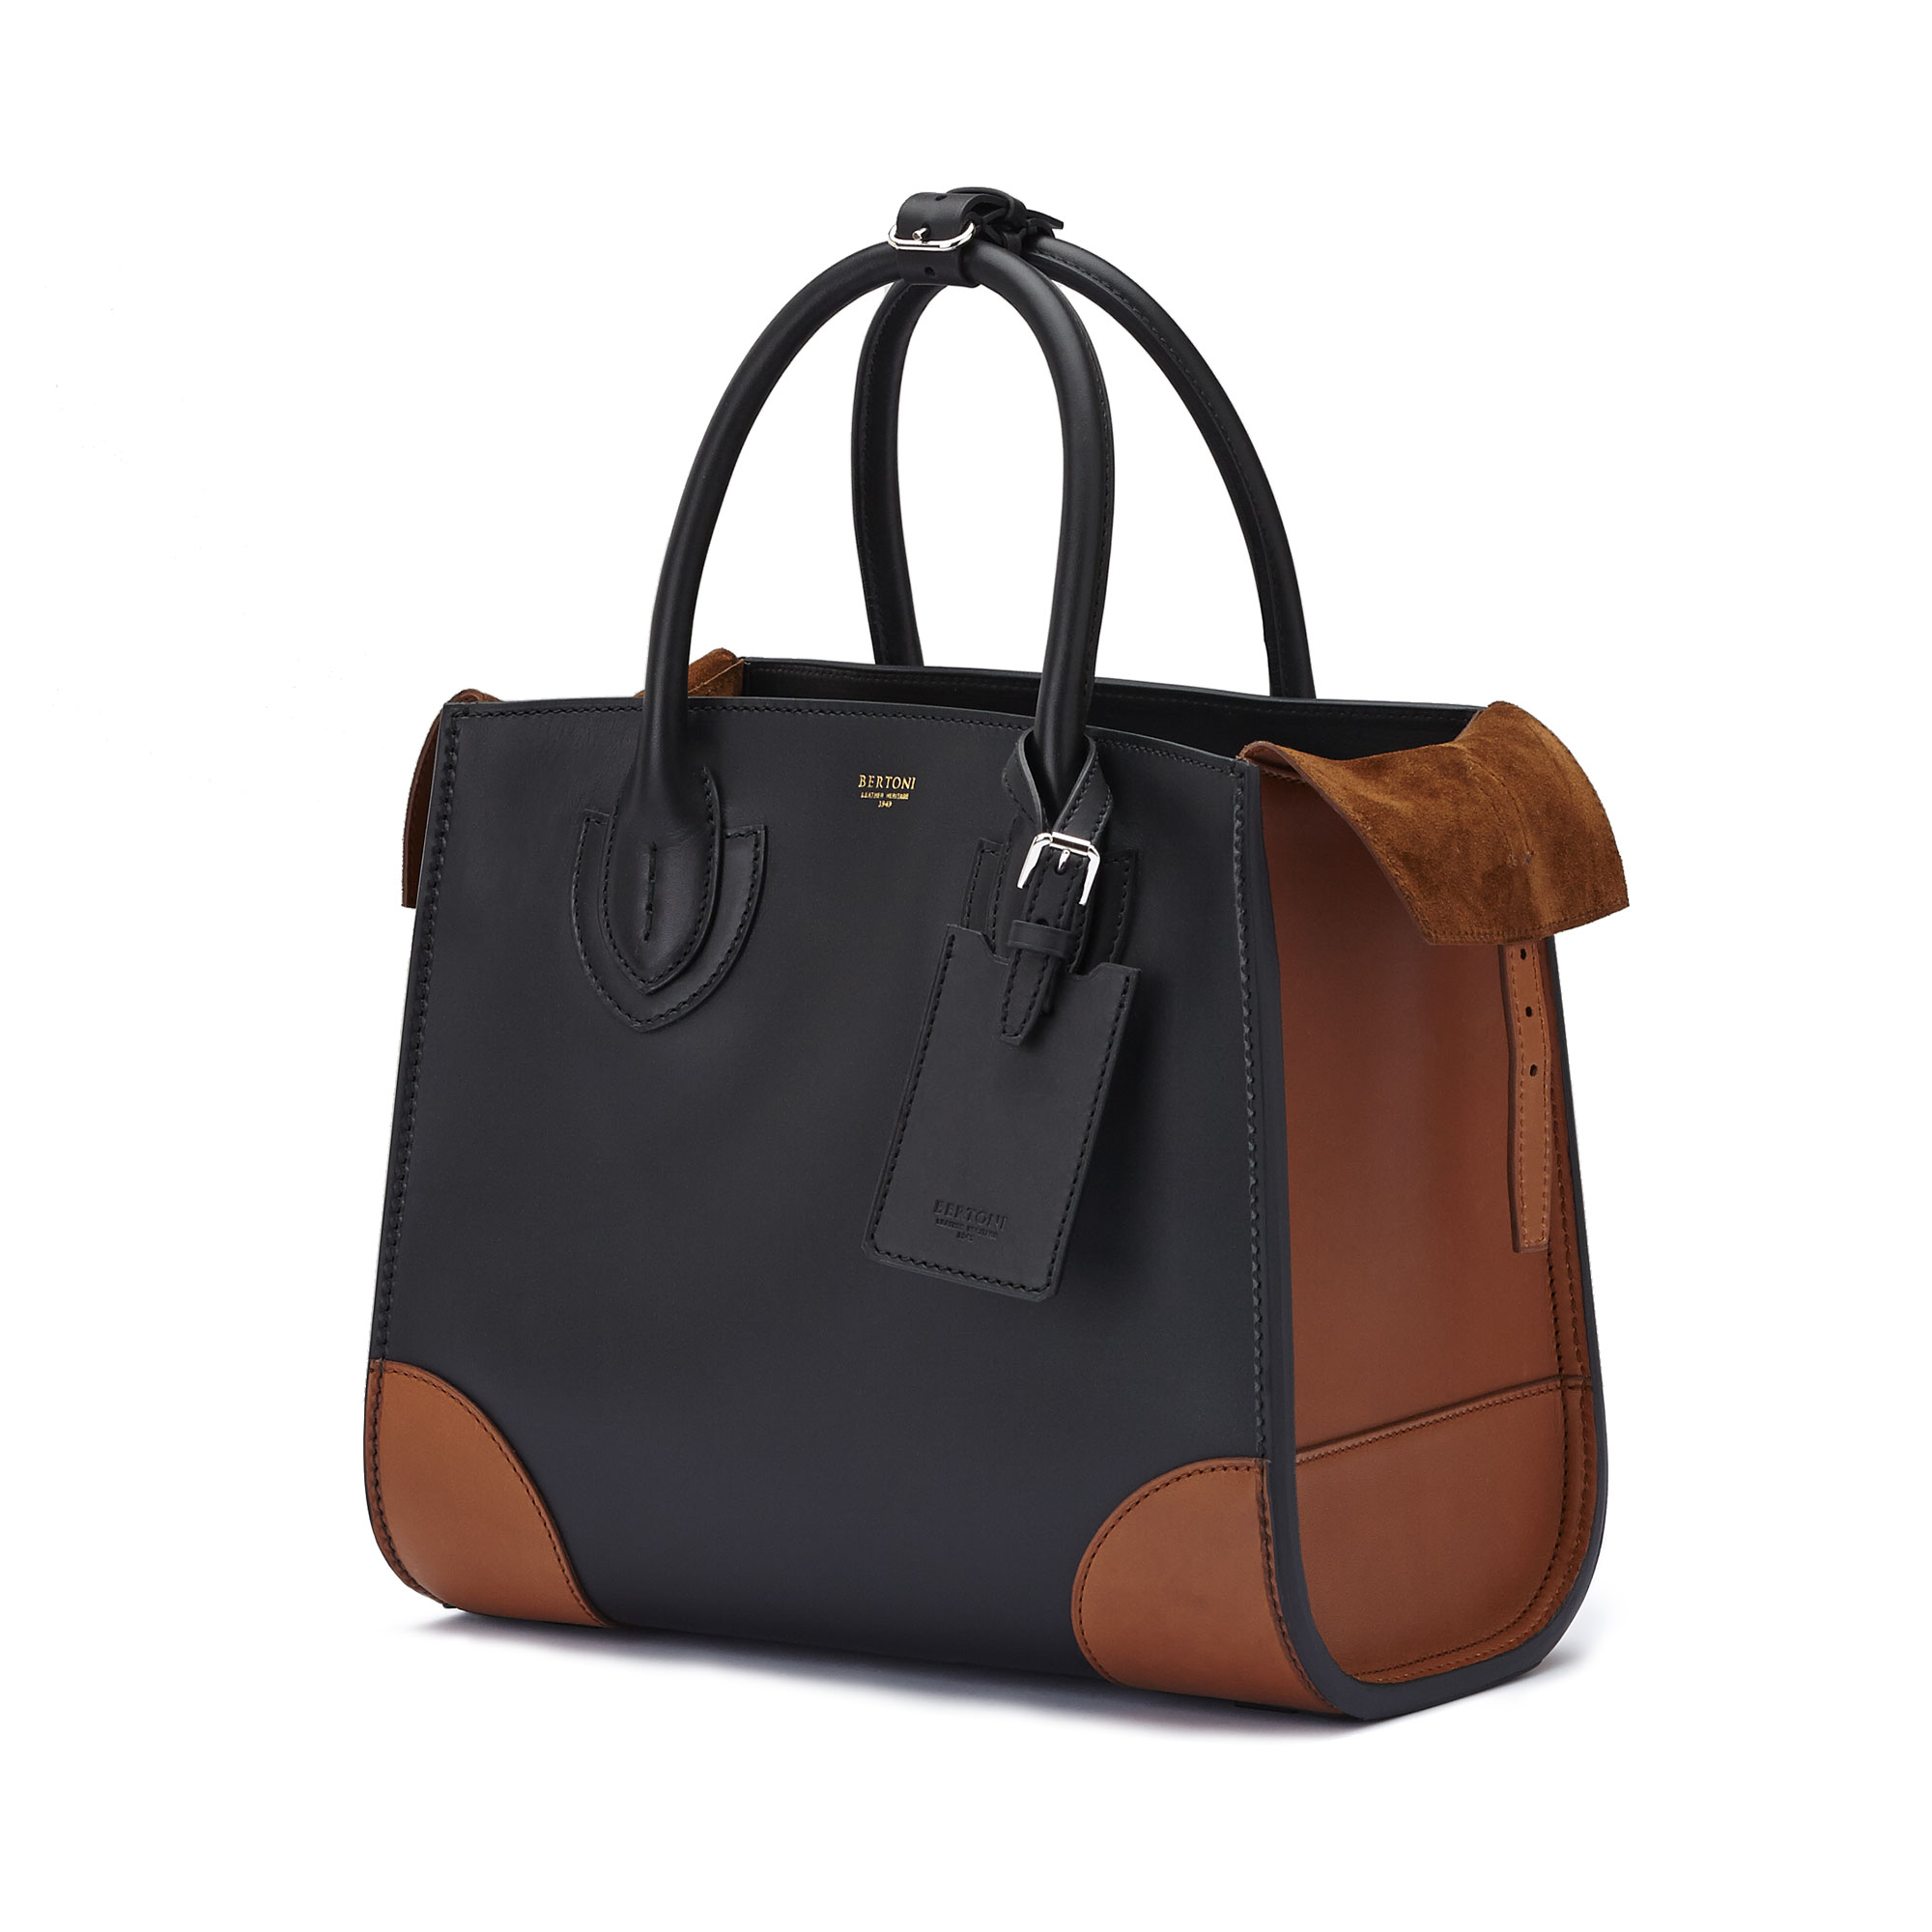 The black terrabruciata french calf Darcy large bag by Bertoni 1949 04